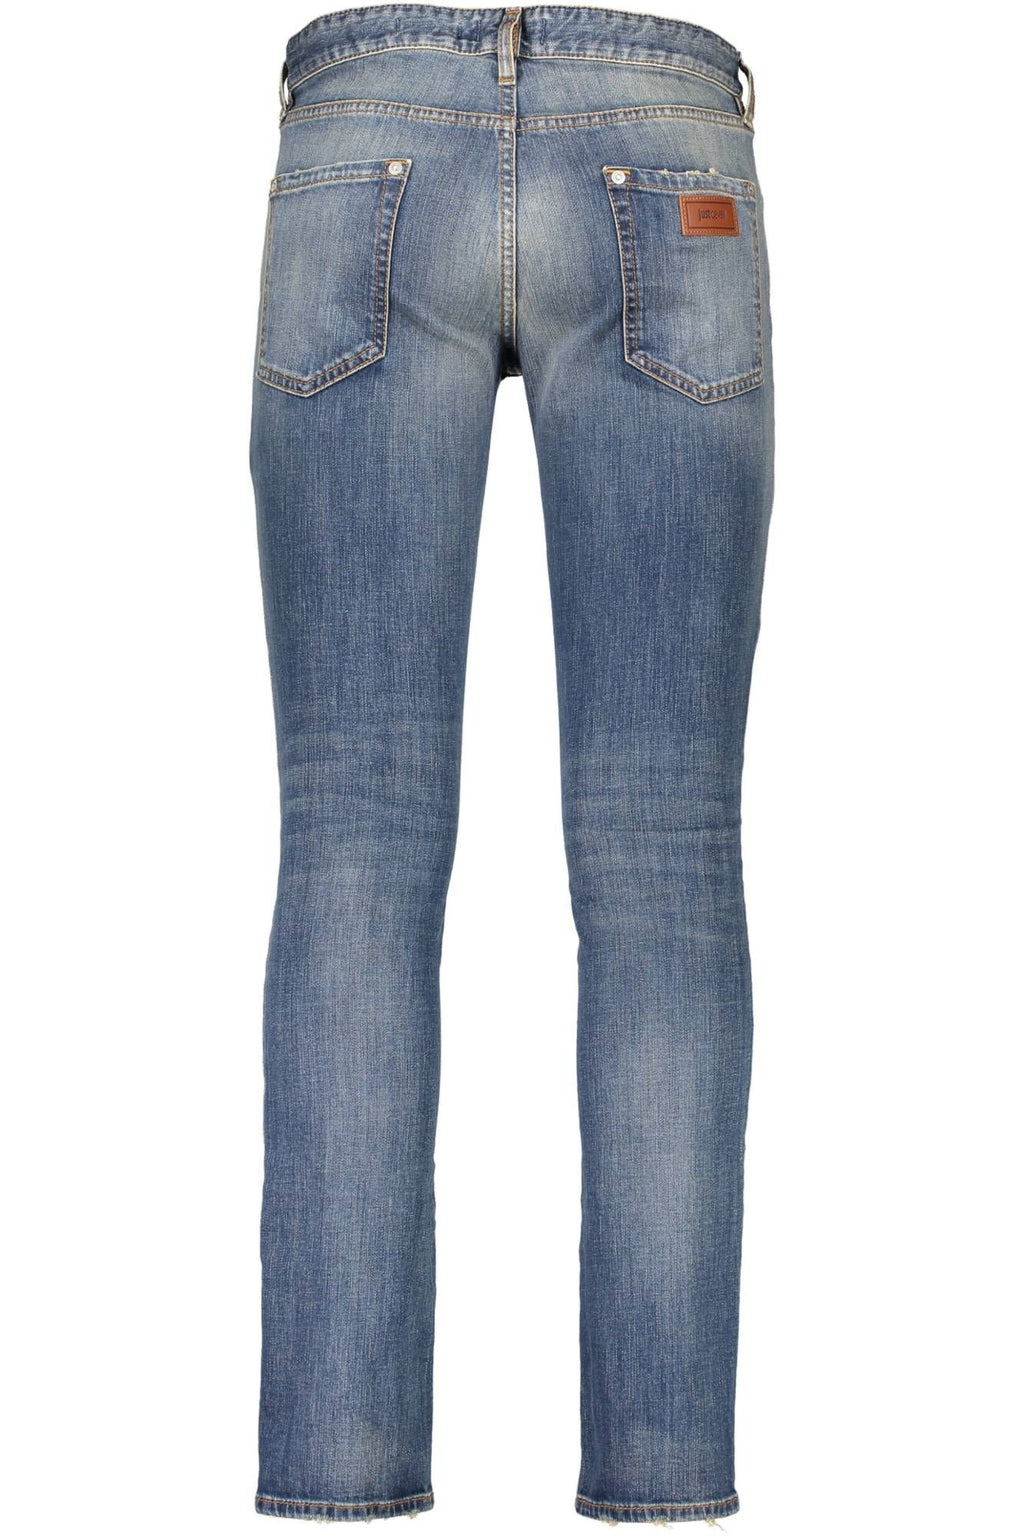 JUST CAVALLI Denim Jeans  Herren - Blau -  SF-S03LA0066 N3142_470